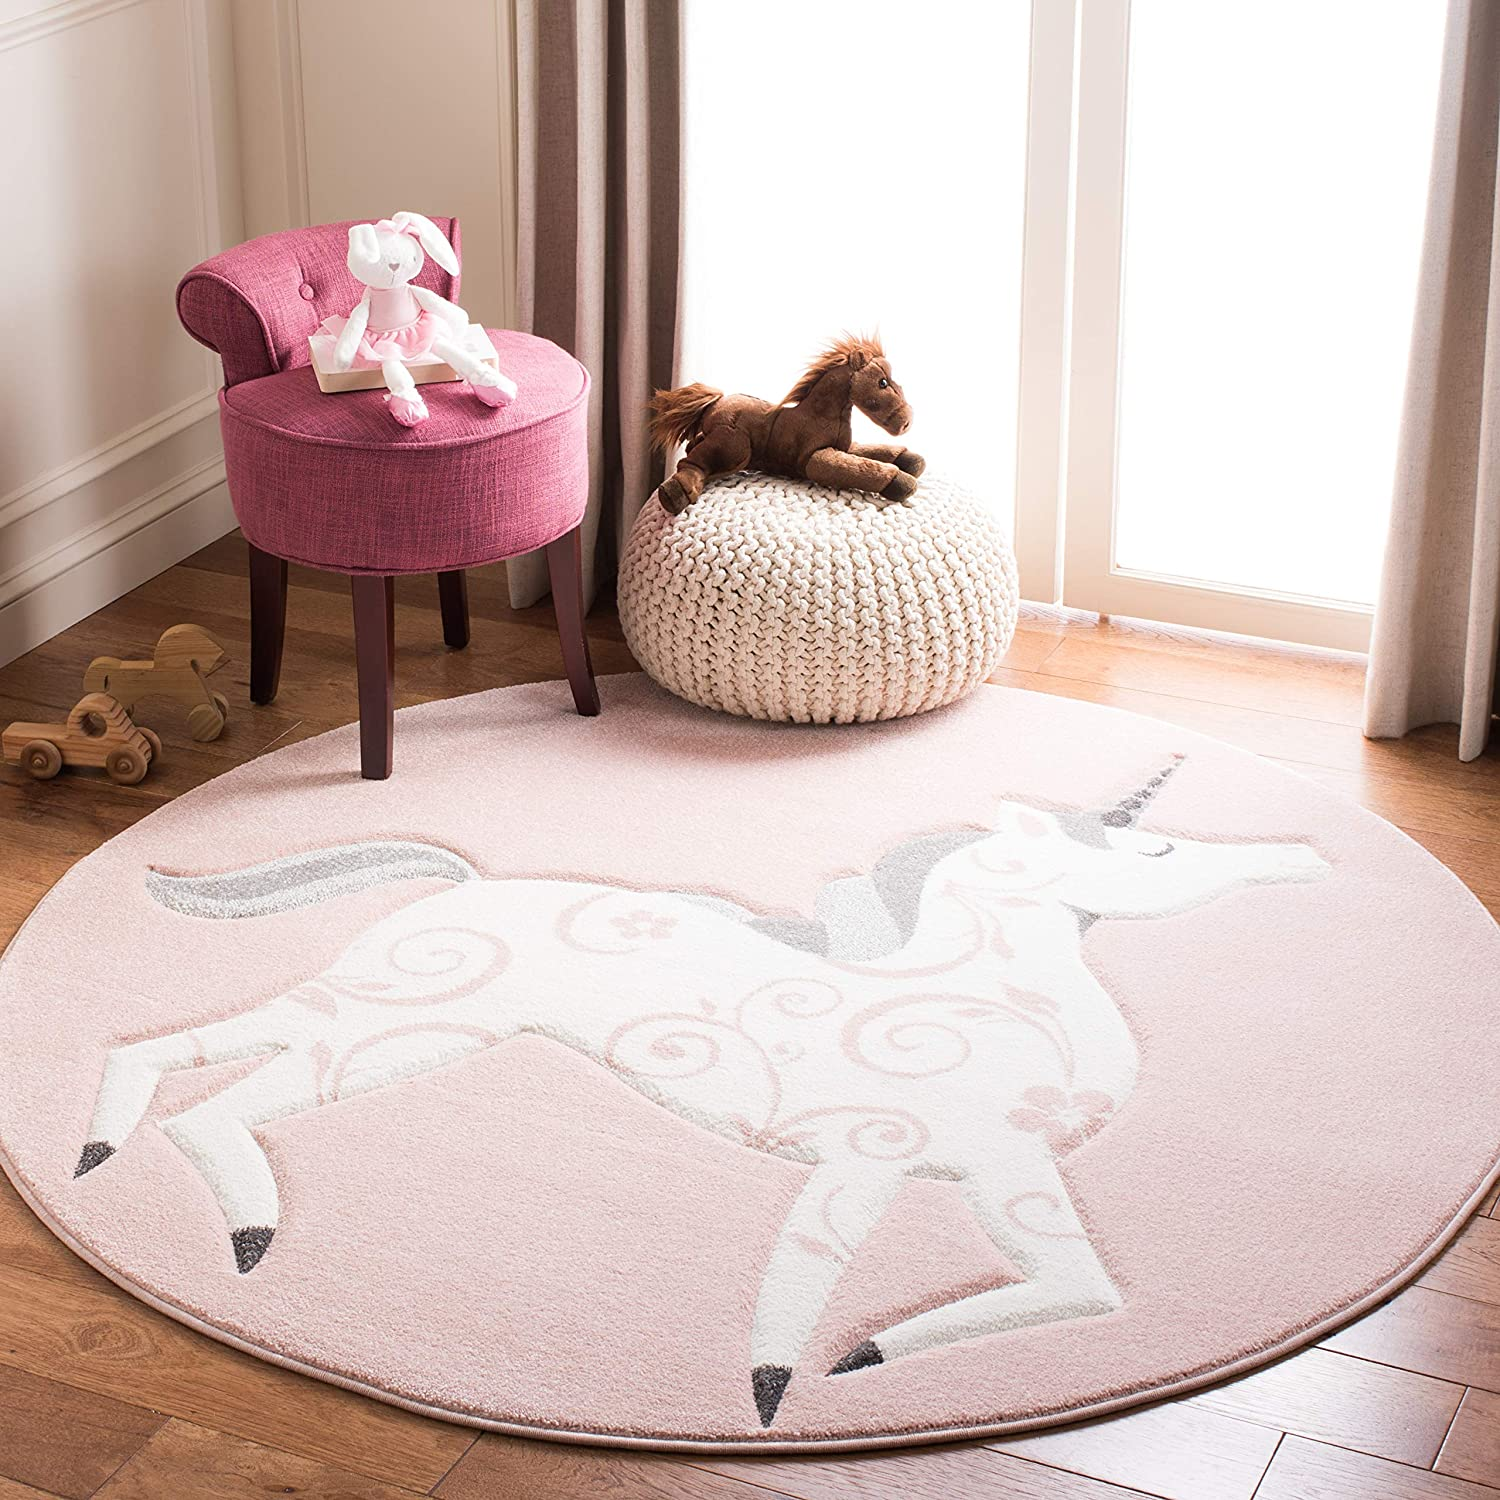 unicorn-gifts-for-girls-area-rug